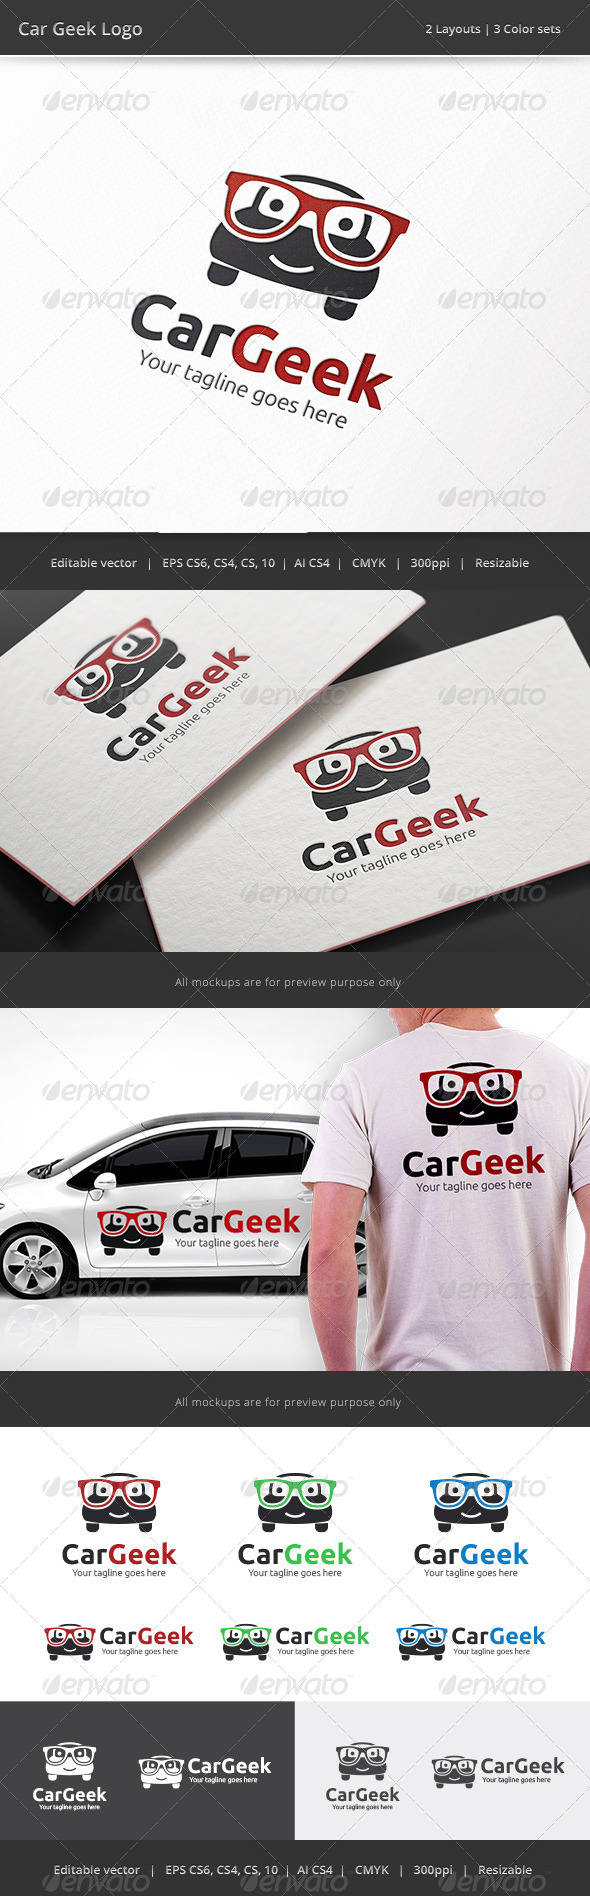 GraphicRiver Car Geek Logo 8176097